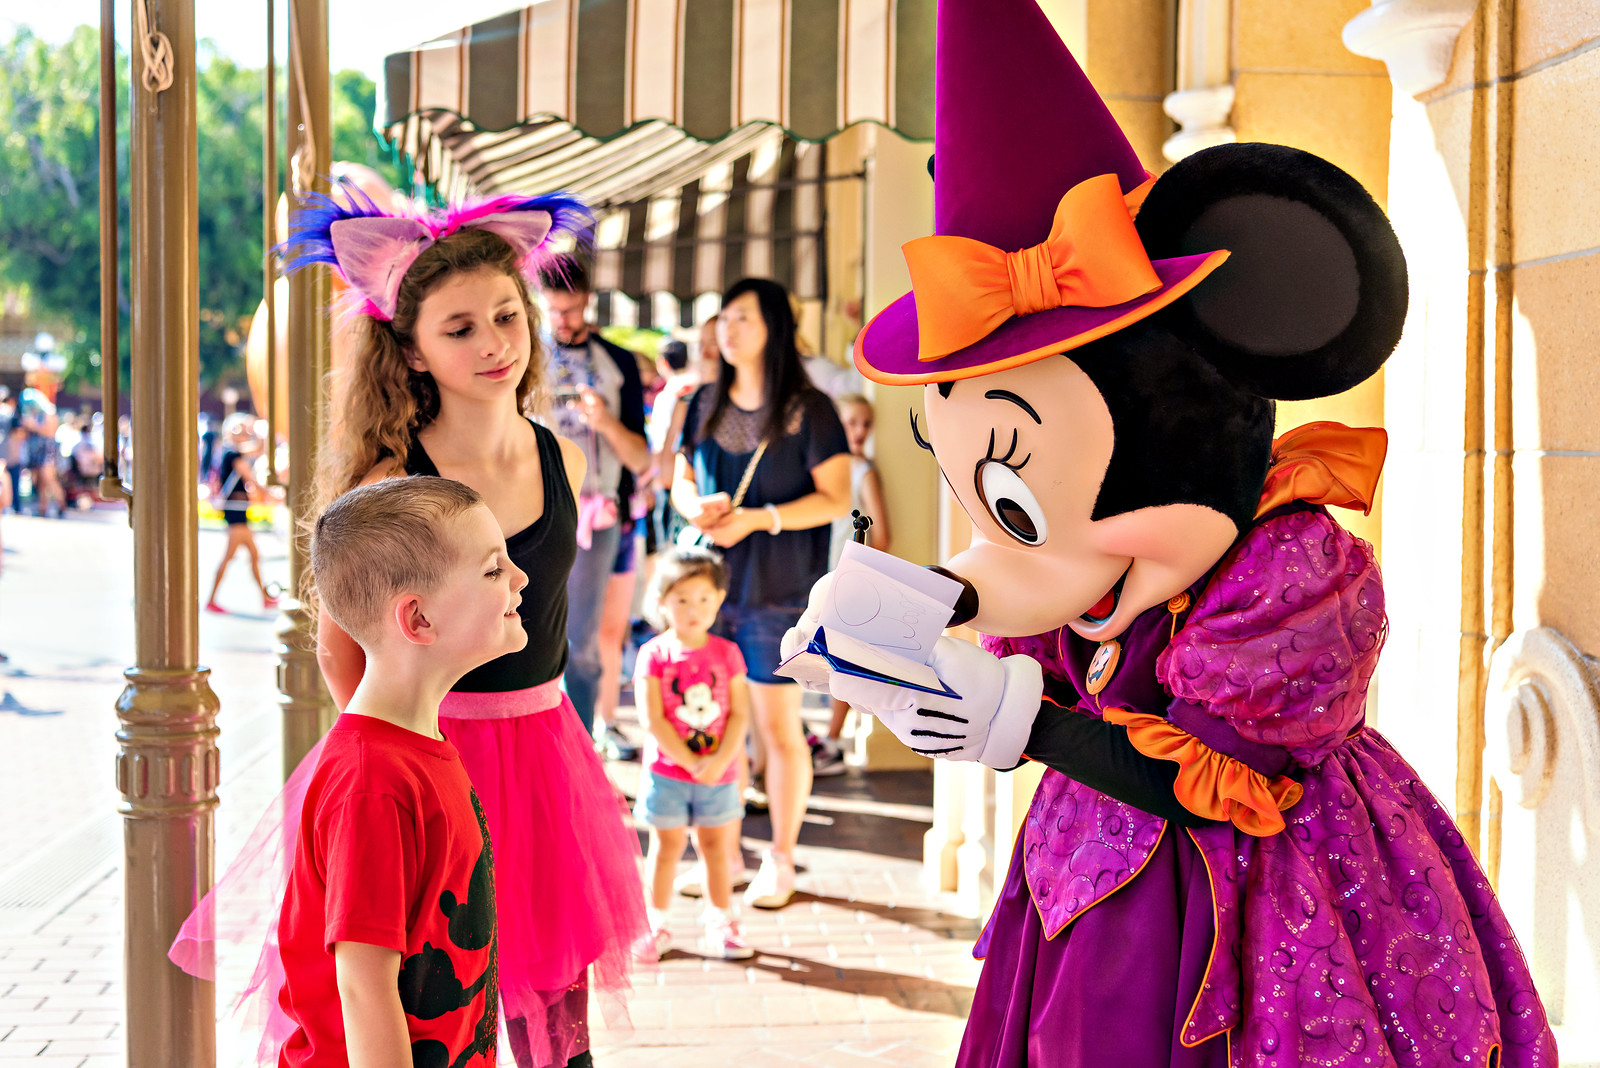 the perfect age to visit Disneyland